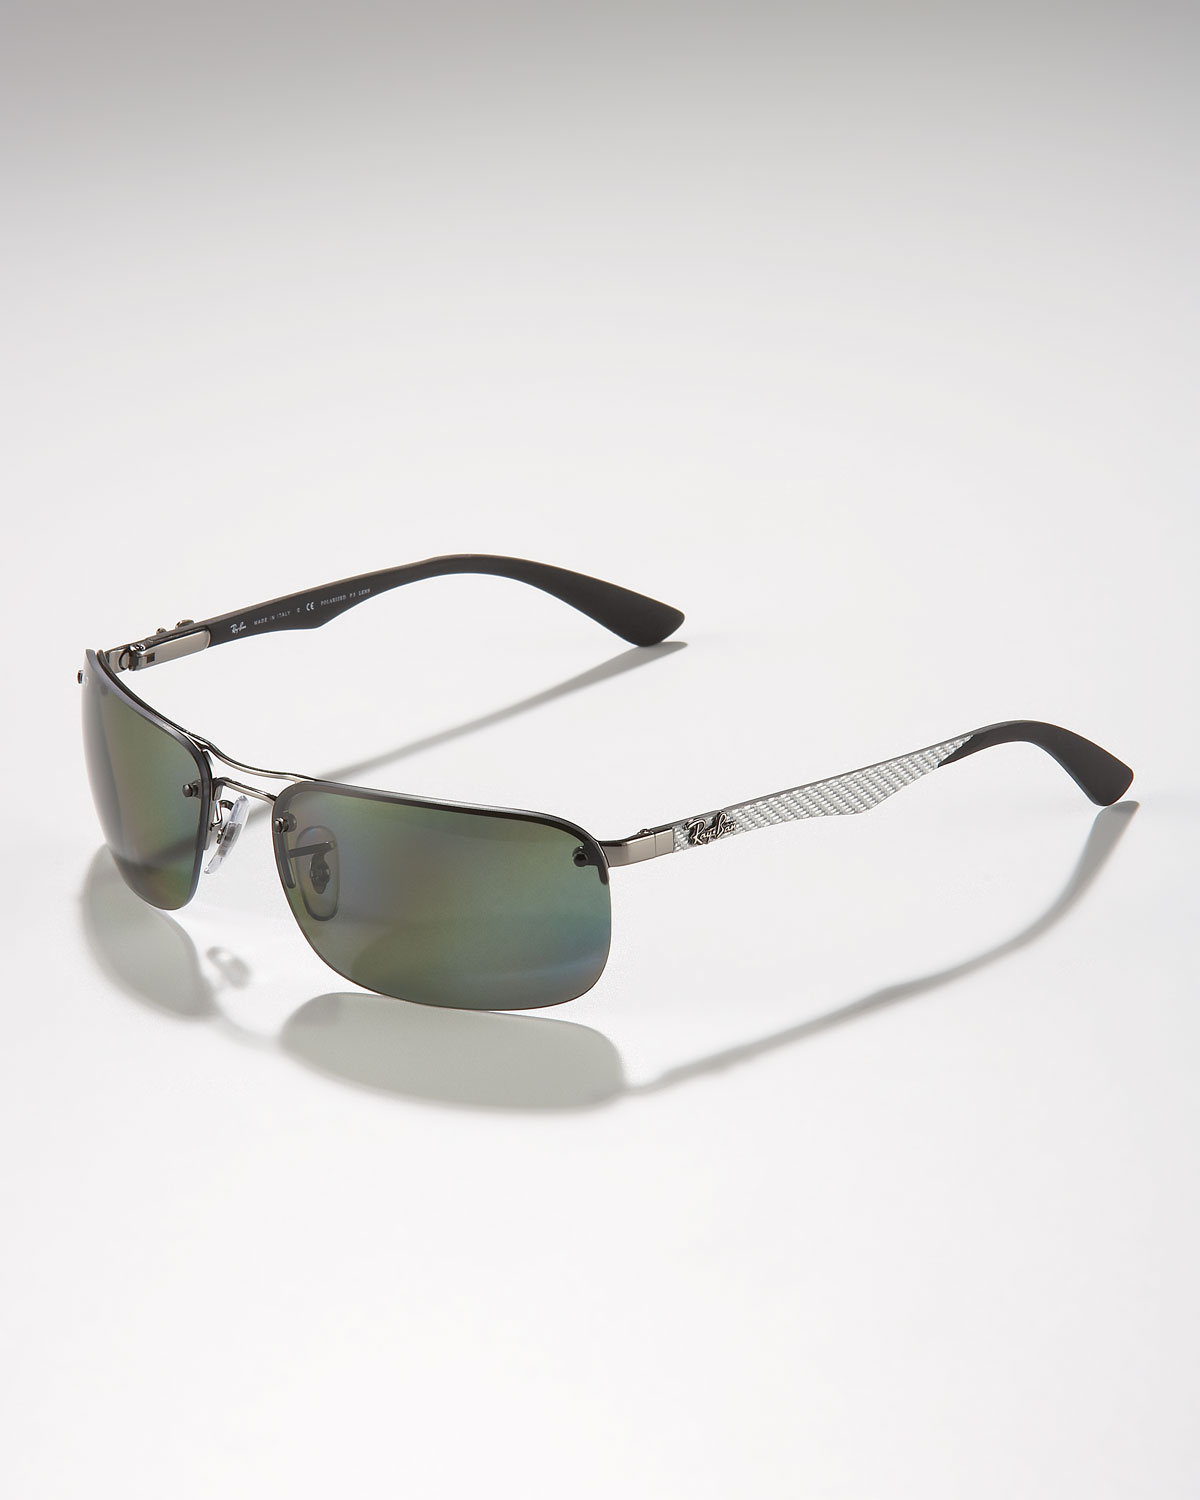 727910e9499 ... coupon lyst ray ban polarized tech sunglasses in gray for men a76e8  c80ee